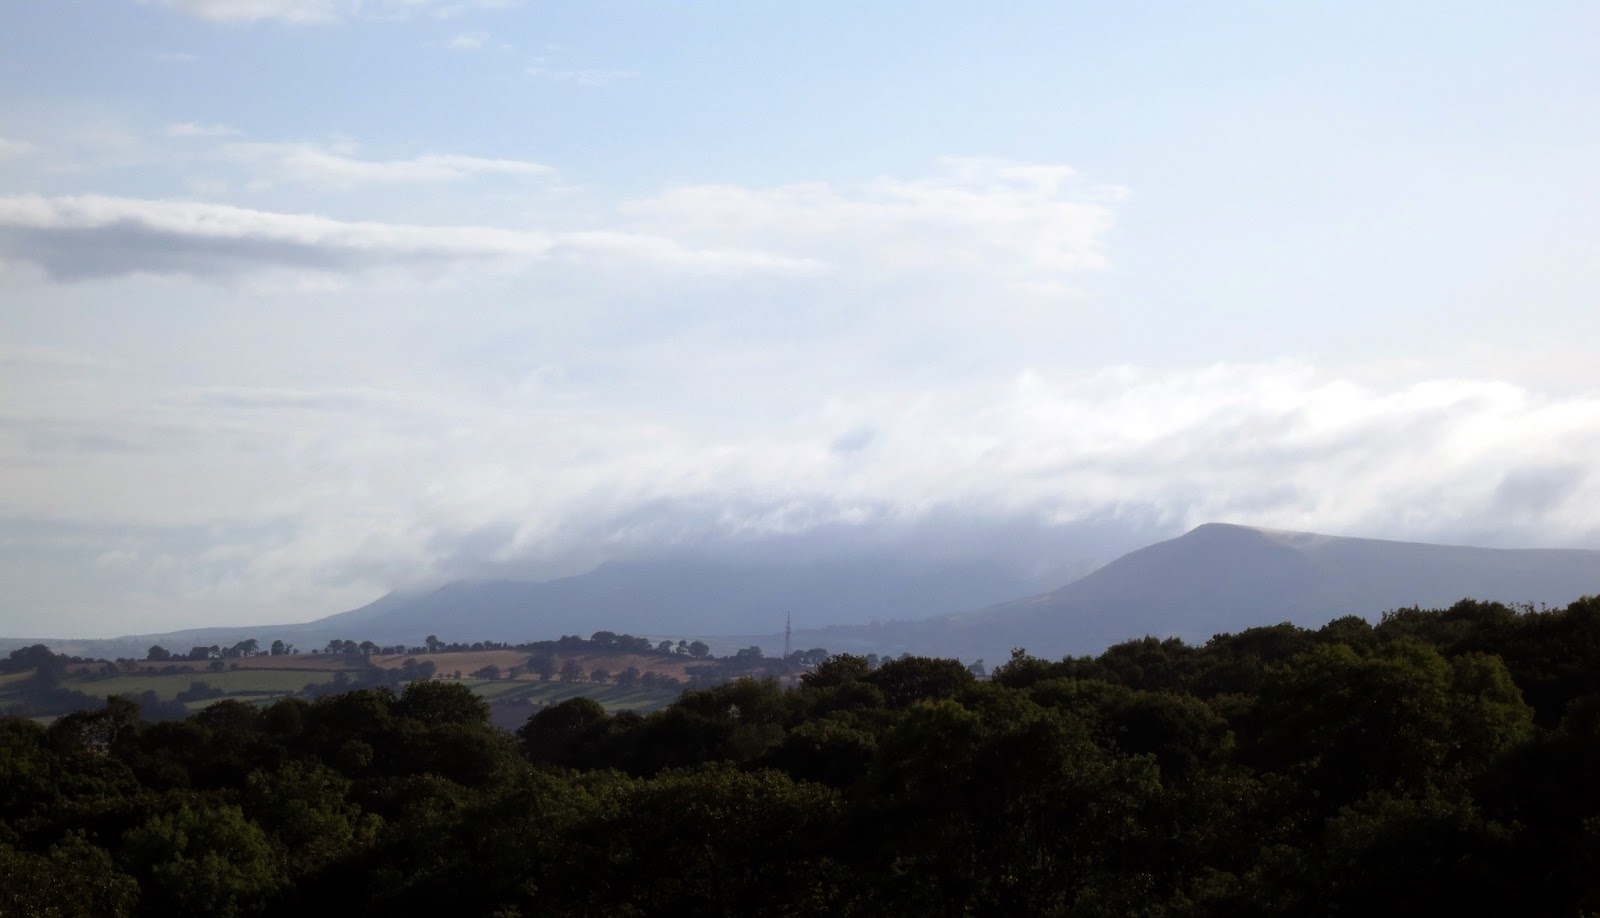 Clouds gather over distant hills.